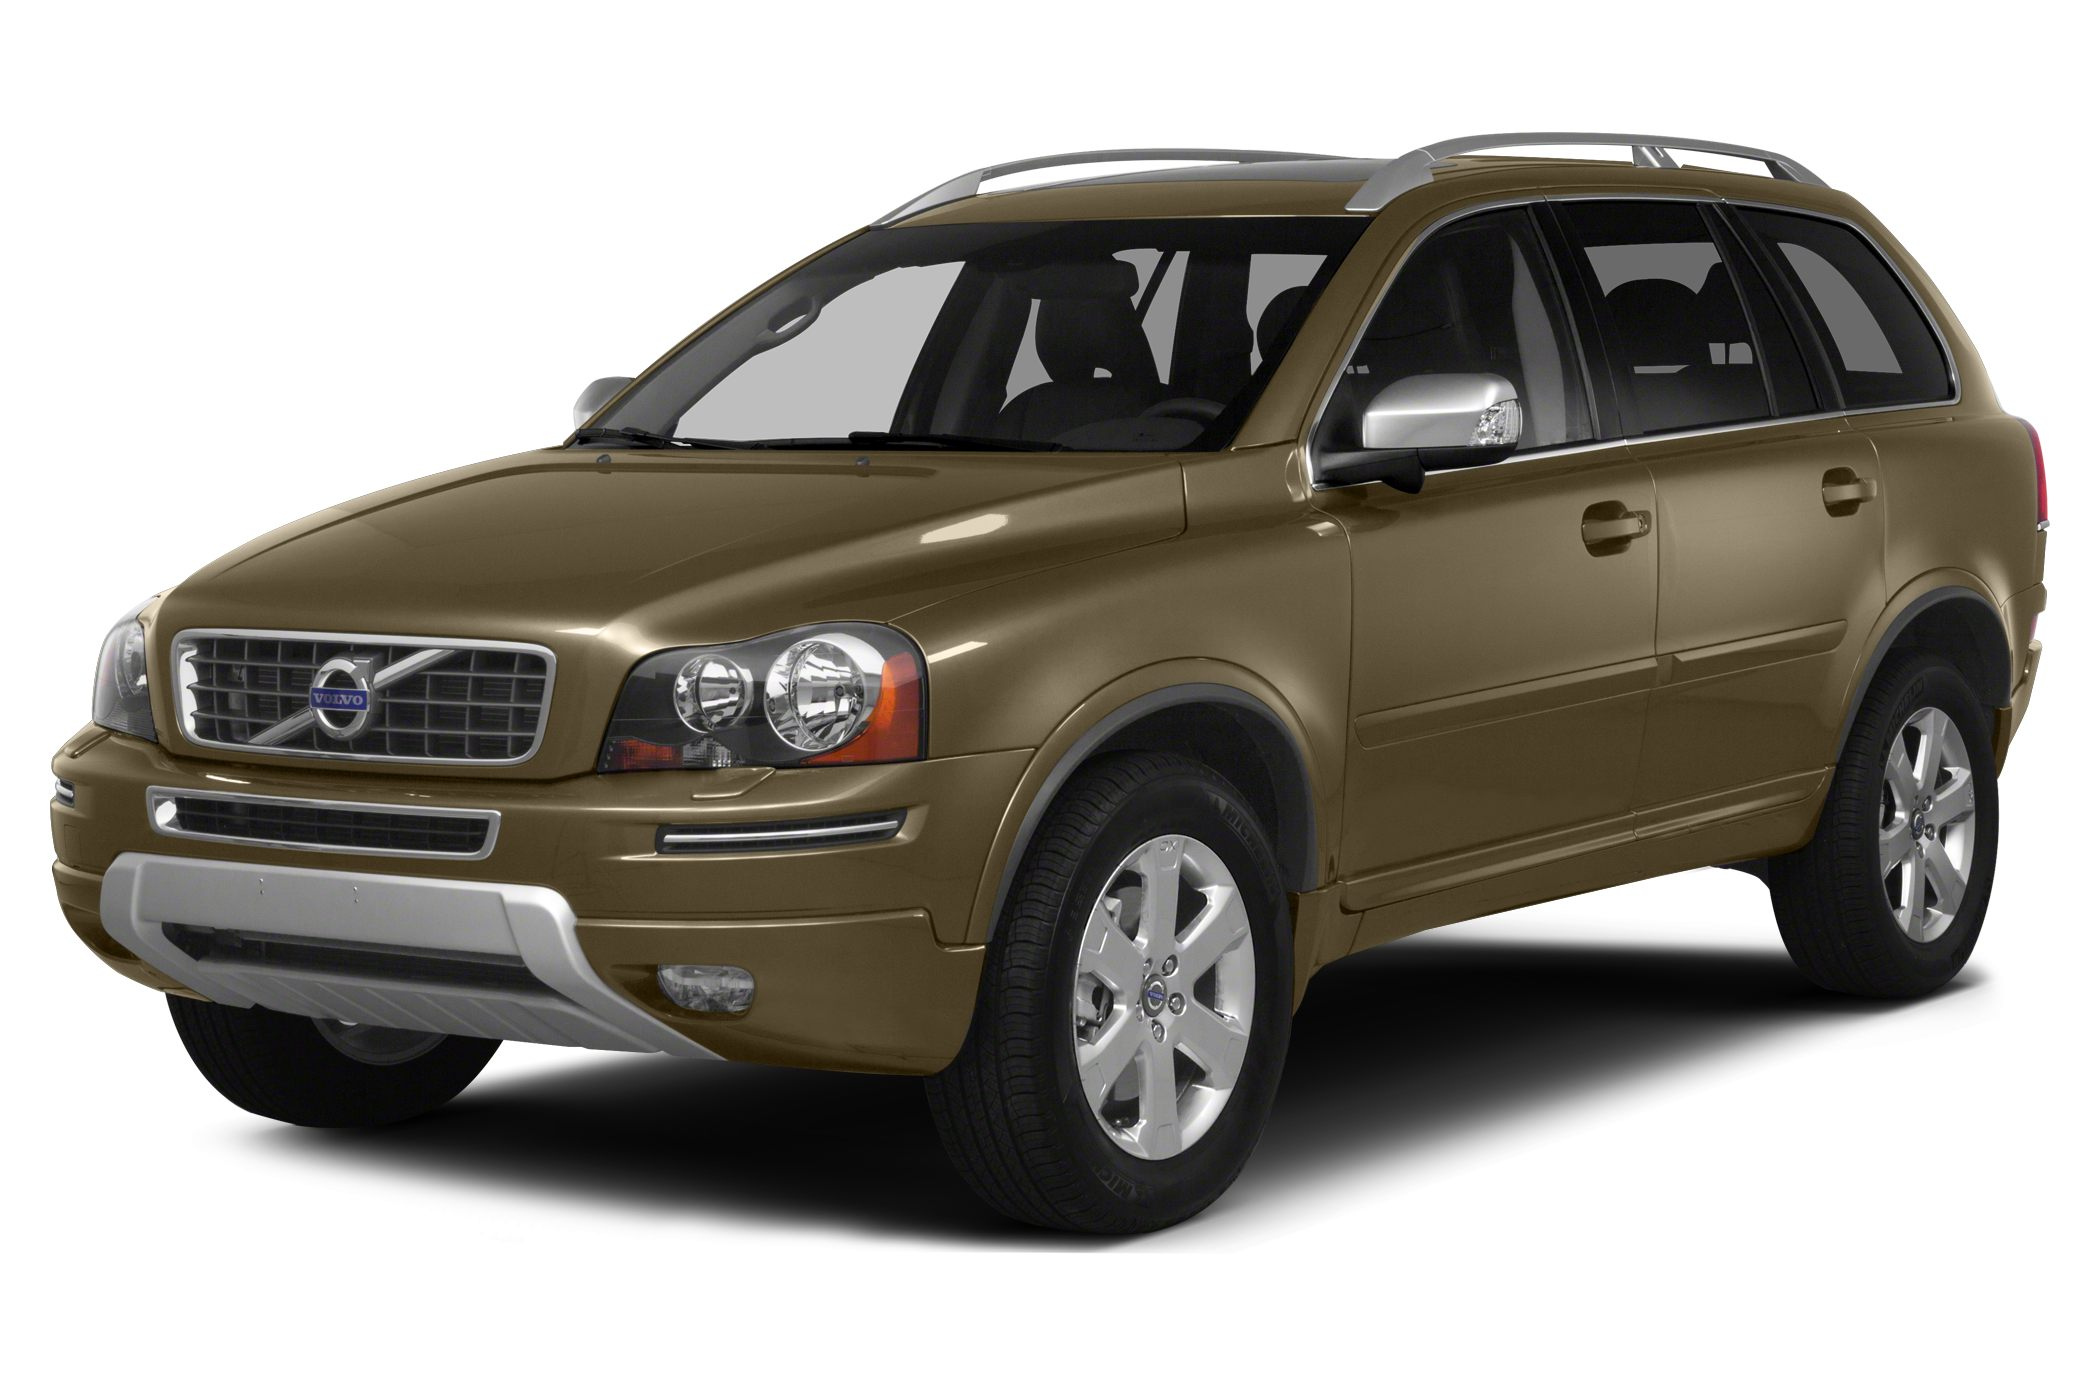 suv why solid reasons tech features volvo great this be of here price next drives your should s